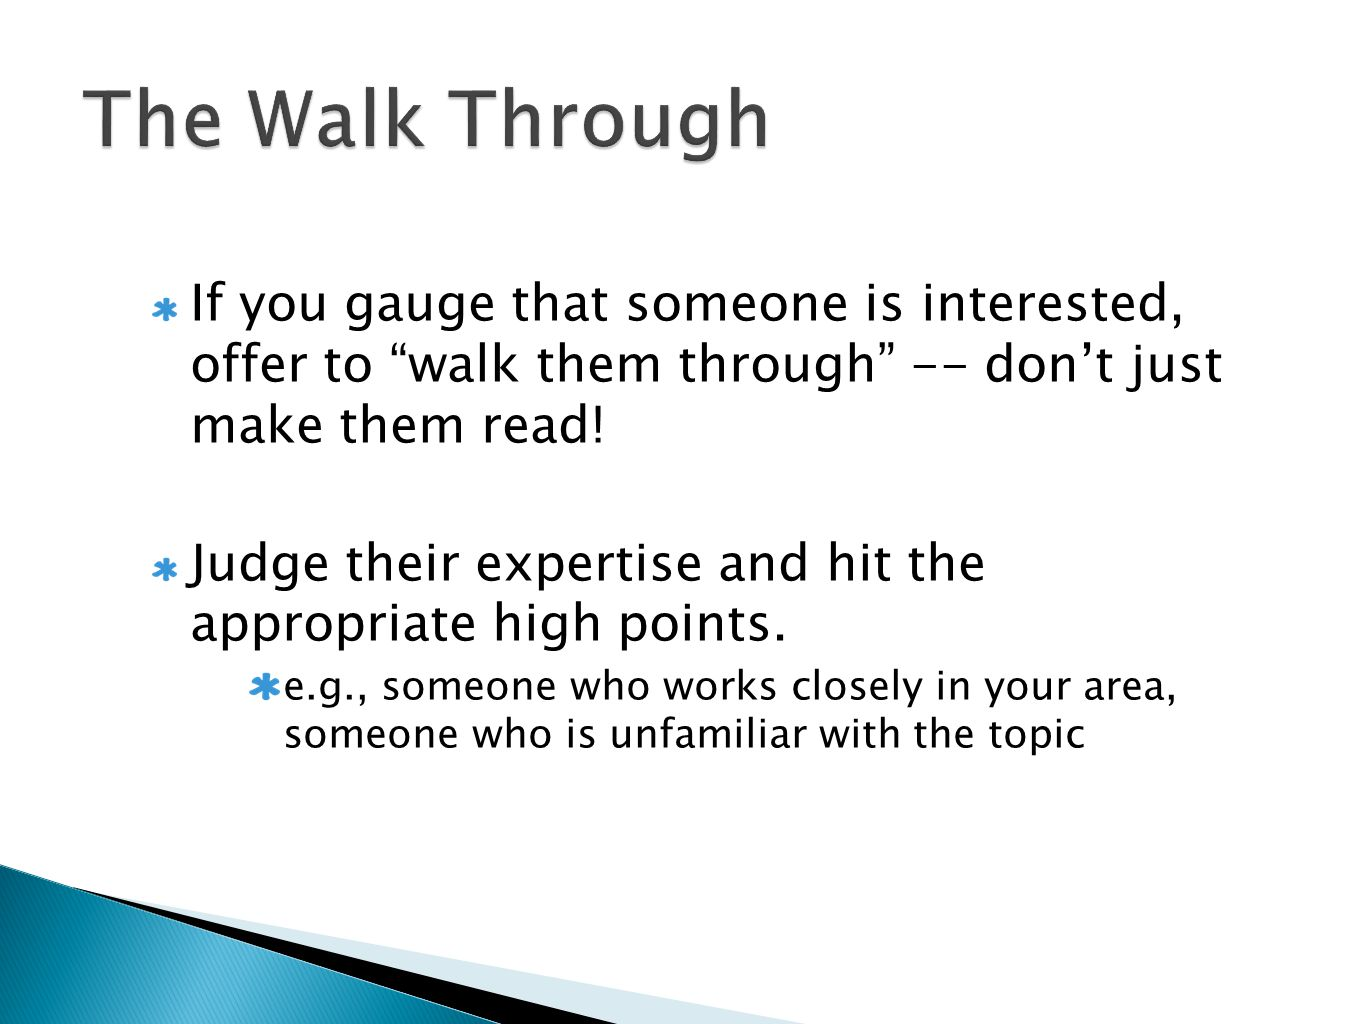 If you gauge that someone is interested, offer to walk them through -- don't just make them read.